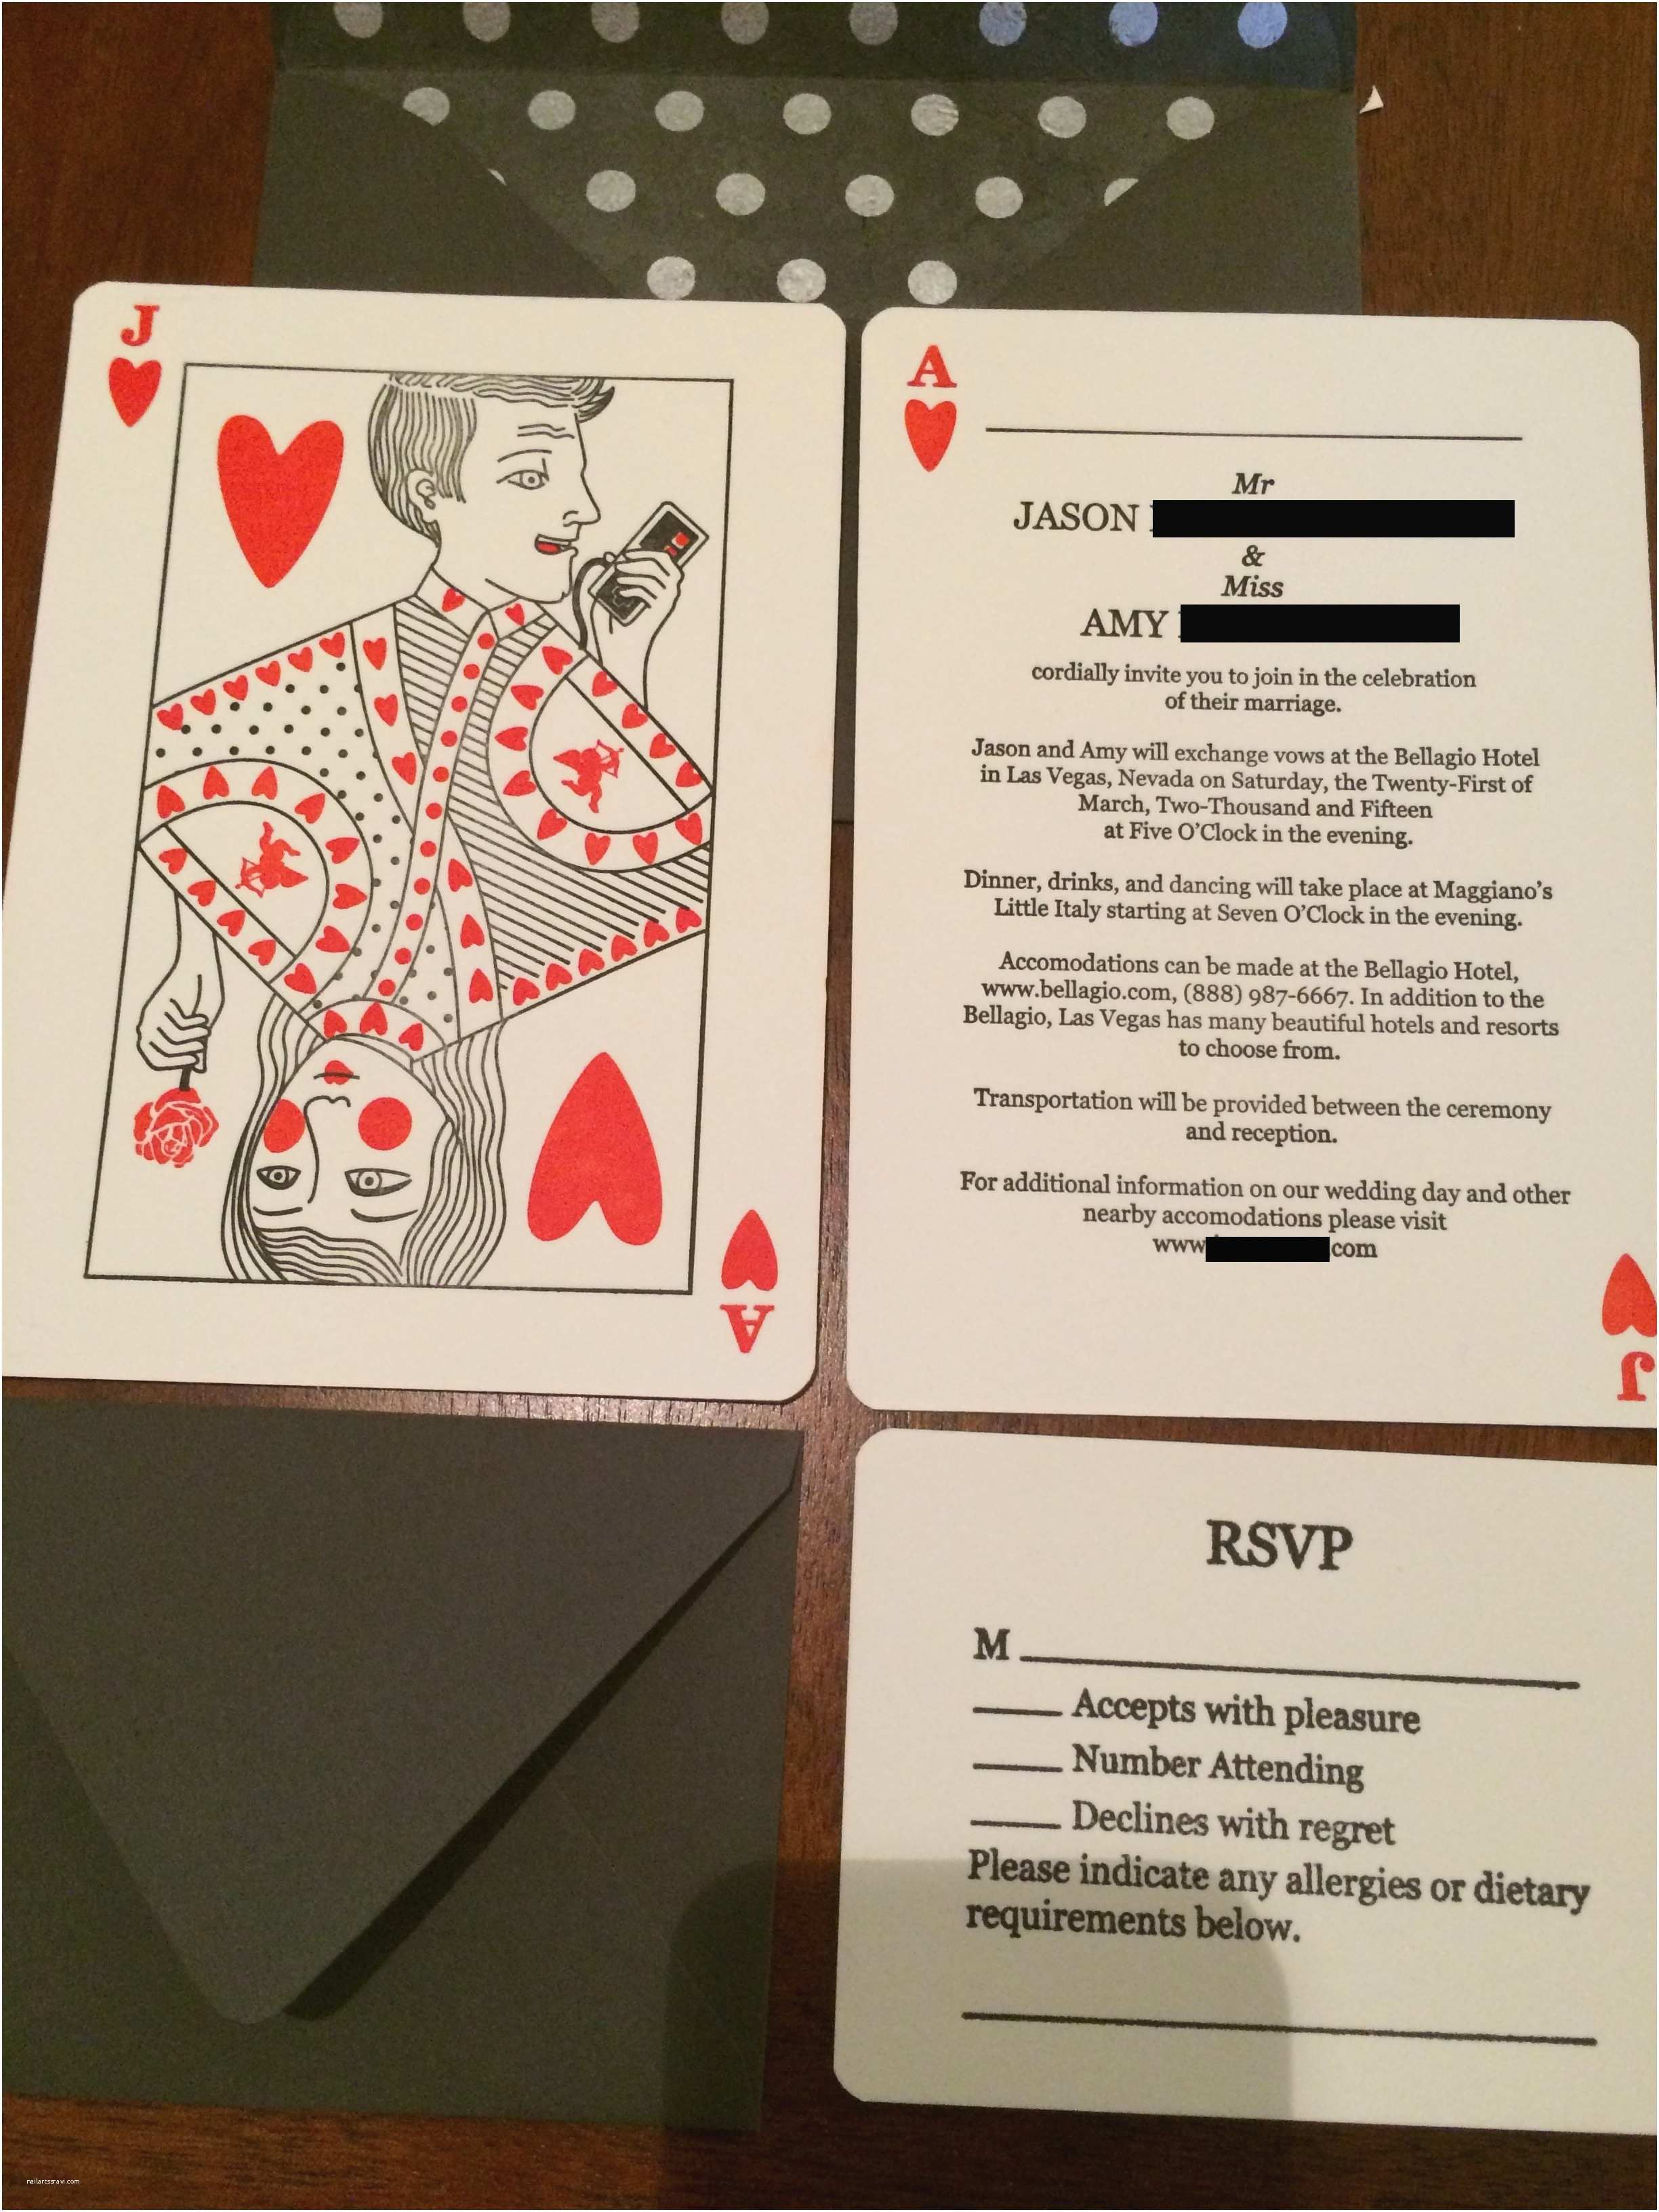 Wedding Invitations Las Vegas Nv top Las Vegas Wedding Invitations